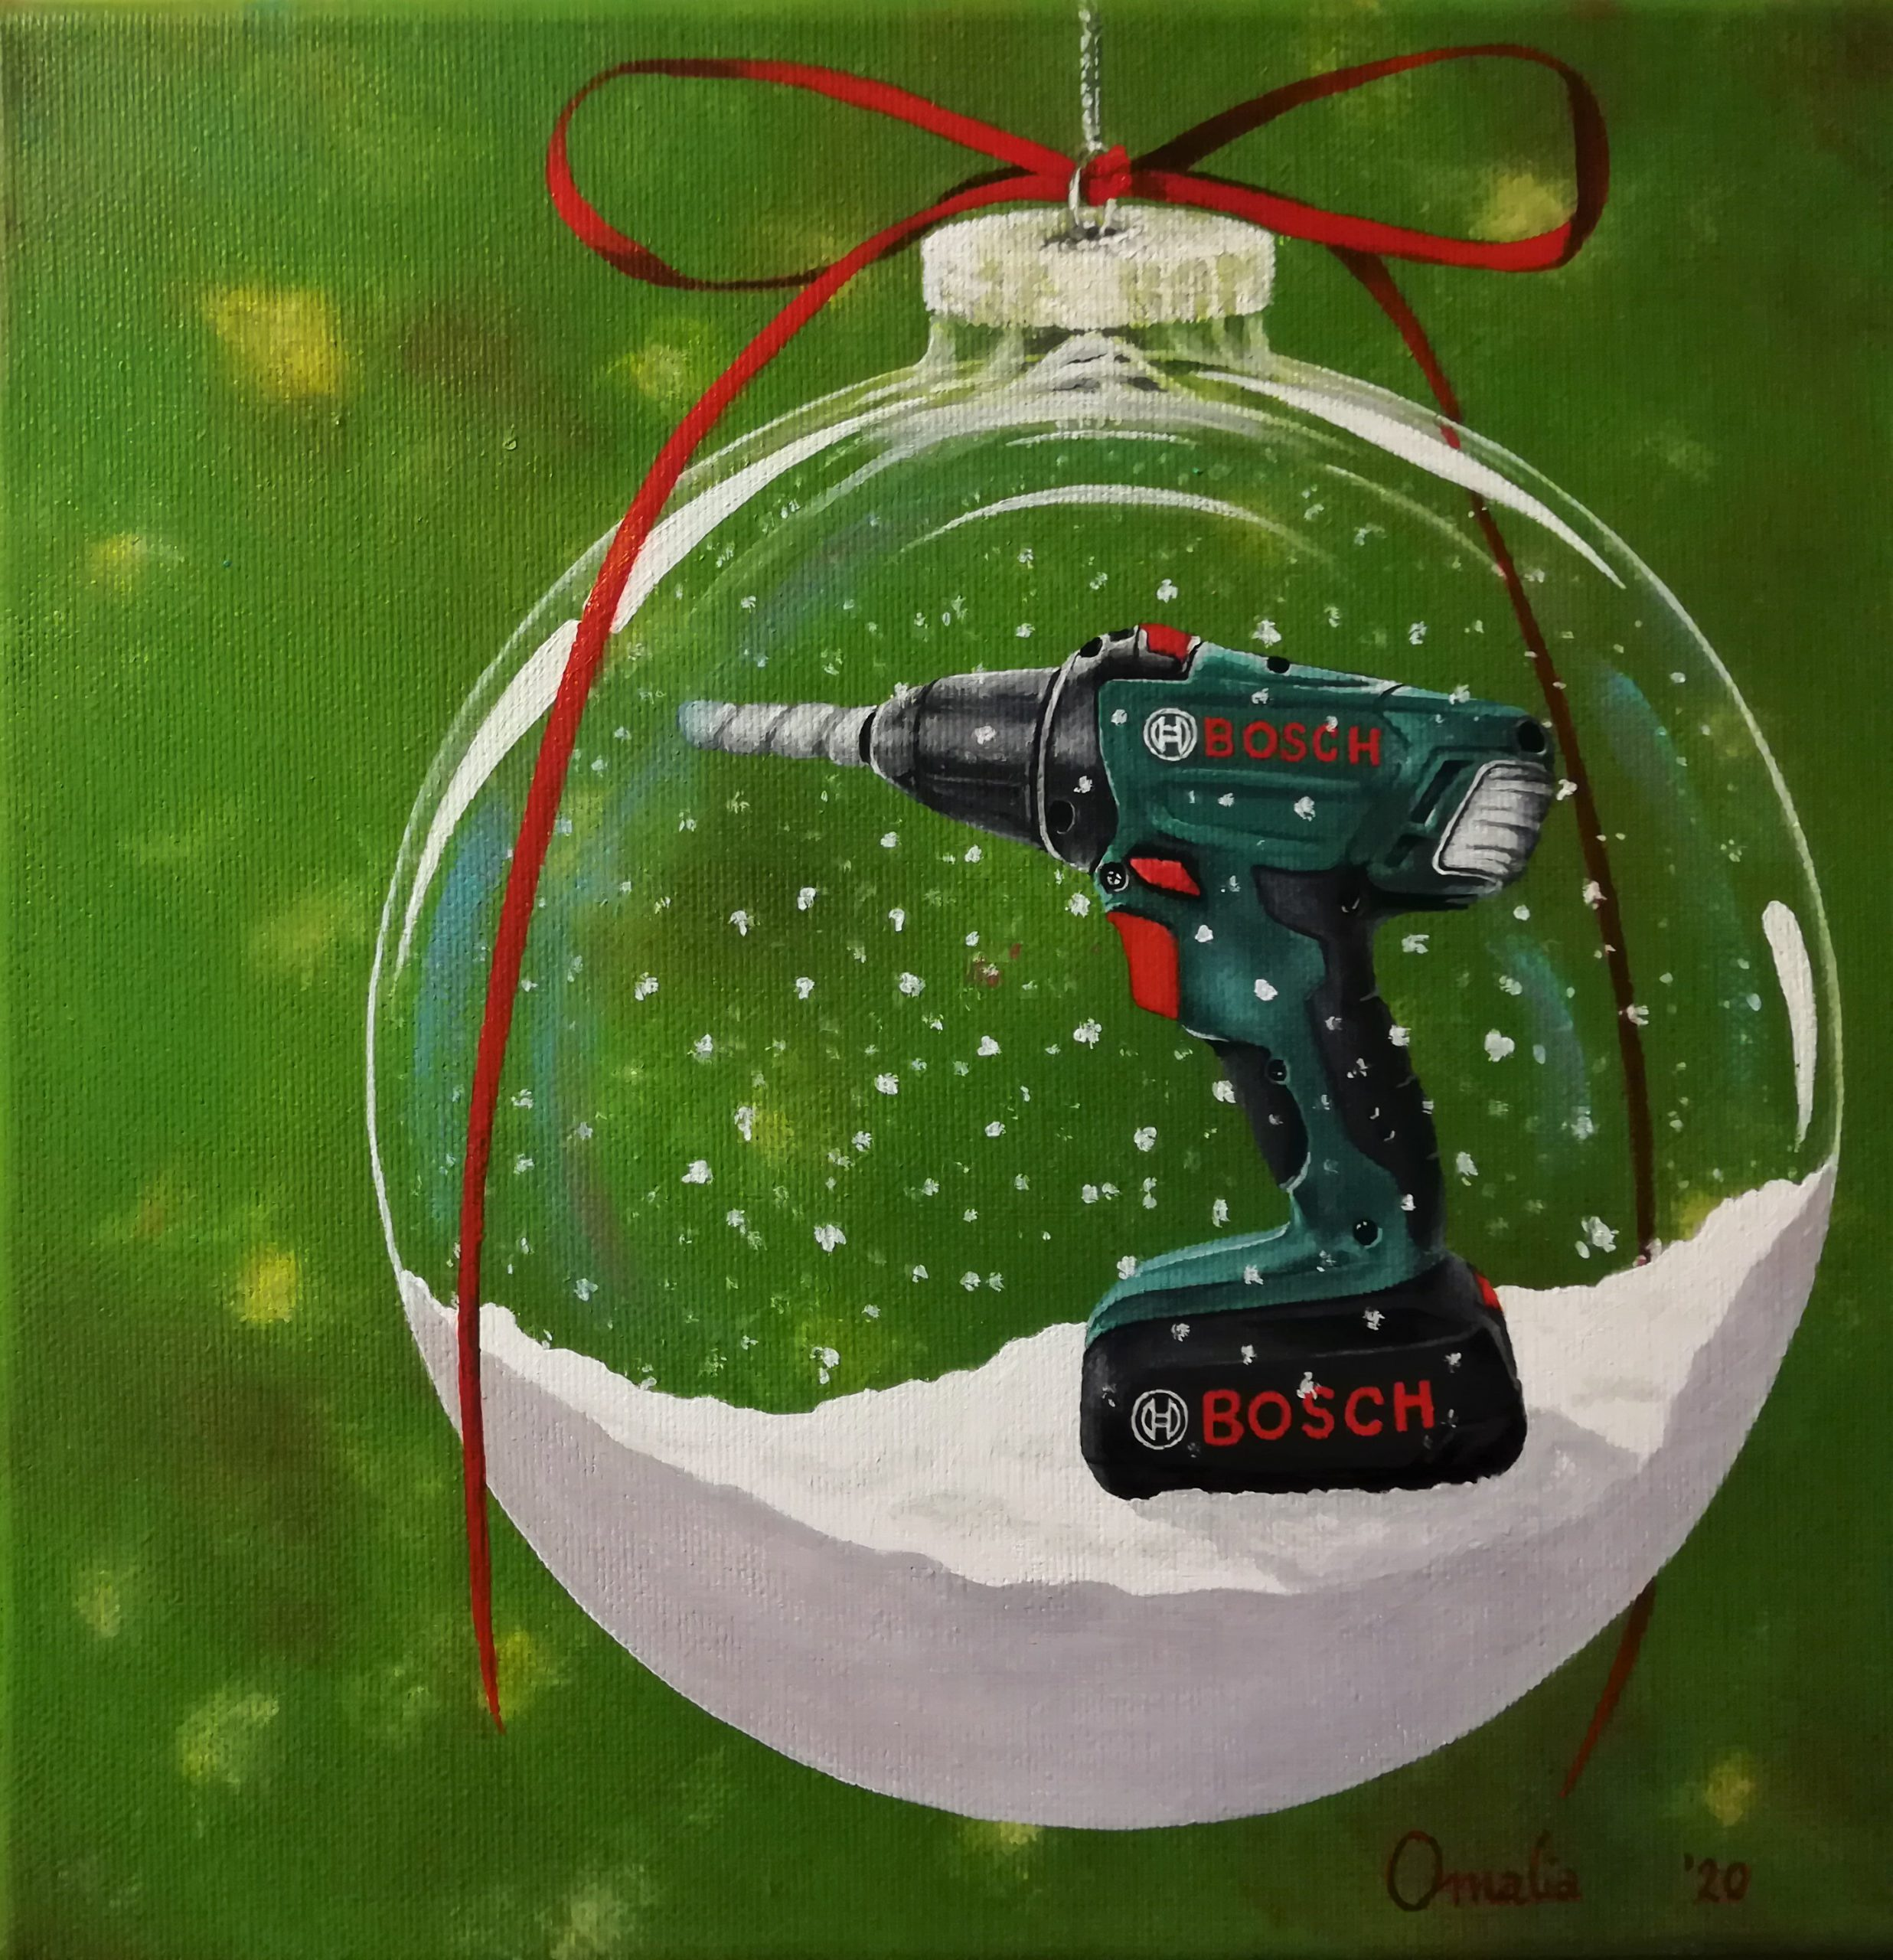 The Bosch Drill in the snowglobe